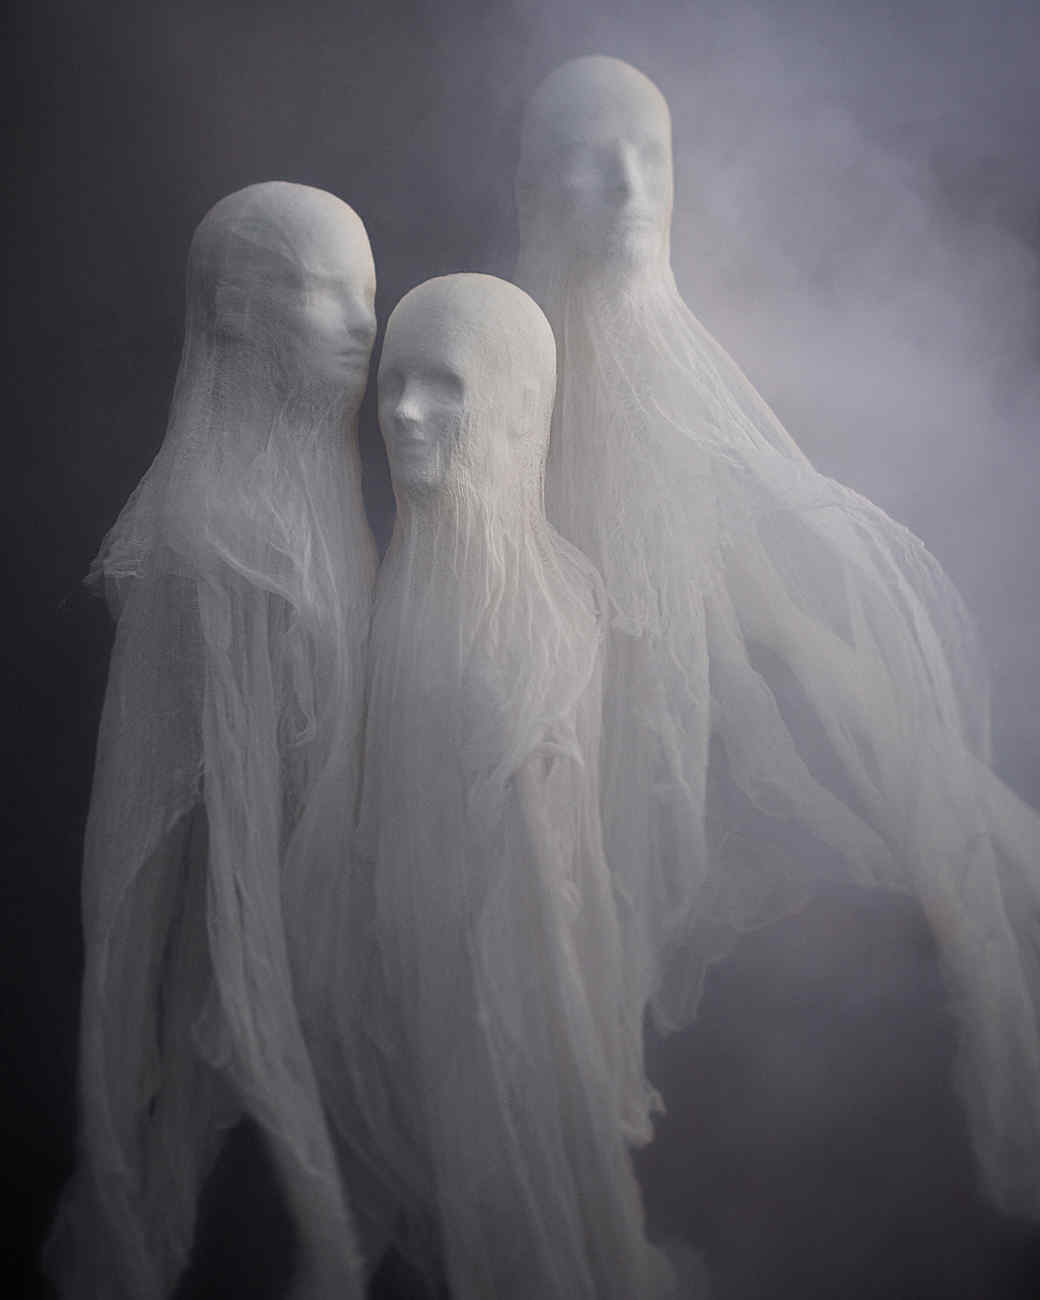 Cheesecloth Spirits